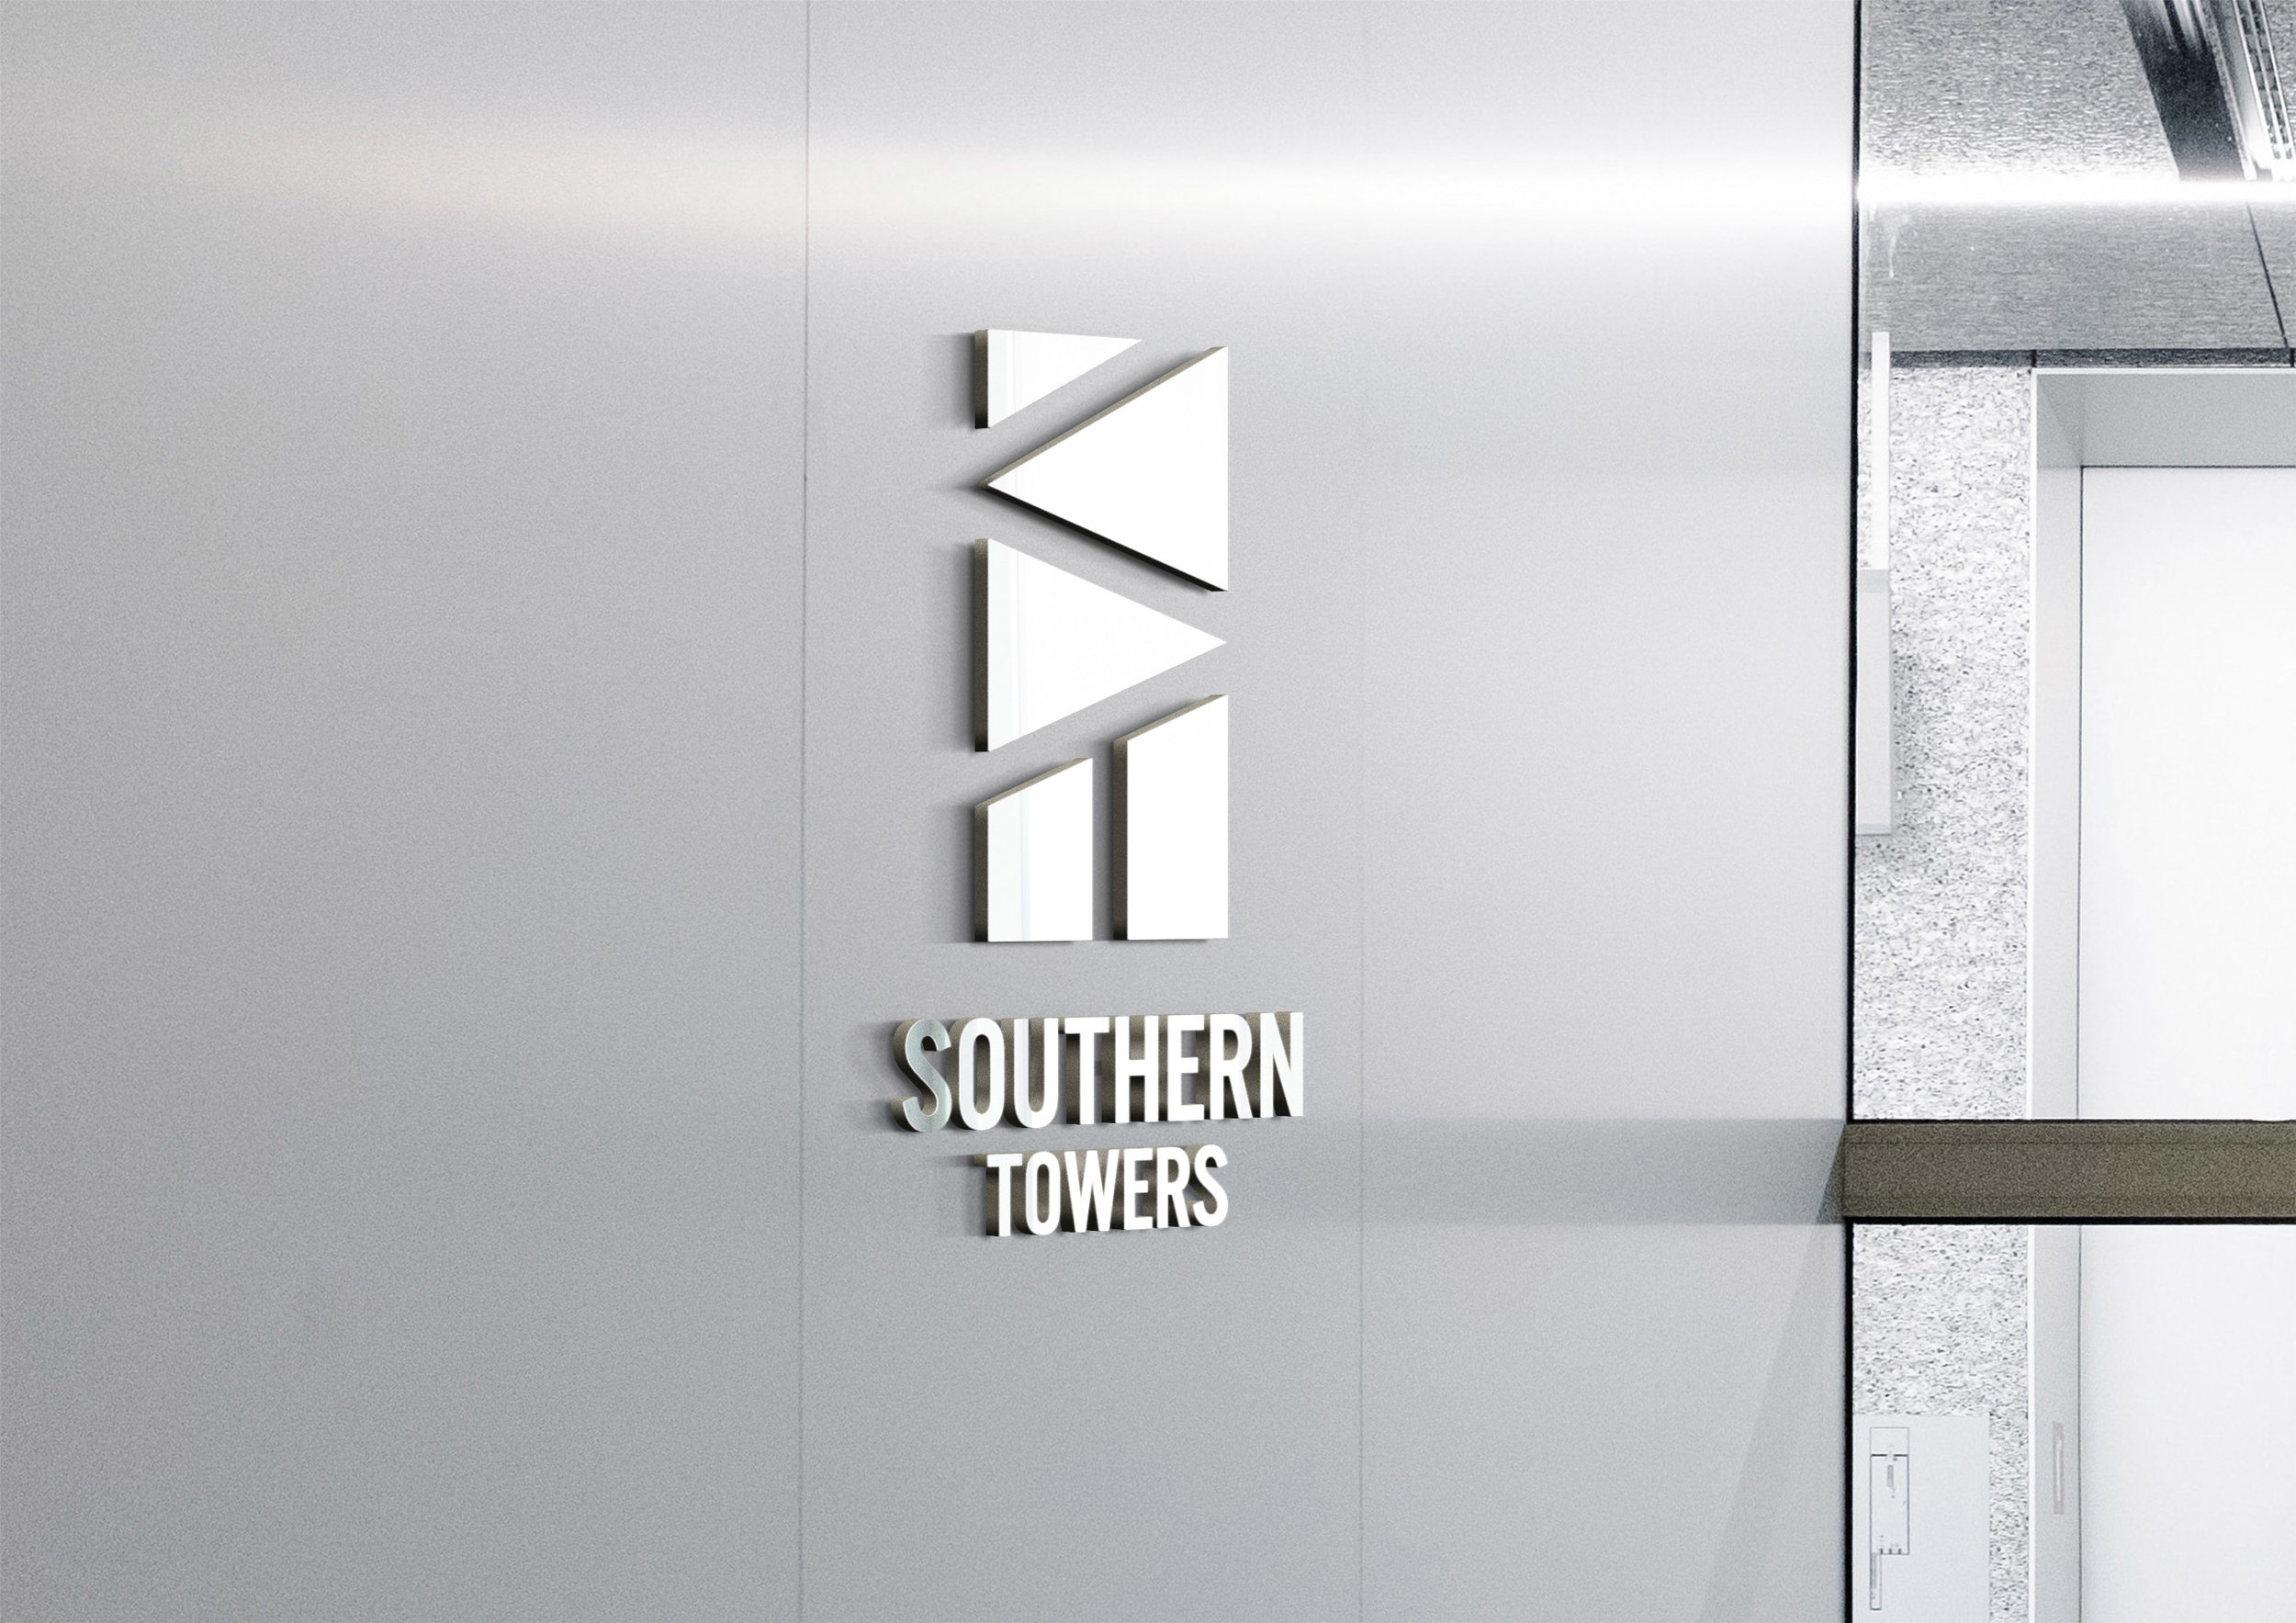 southern_towers_sign_72dpi.jpg